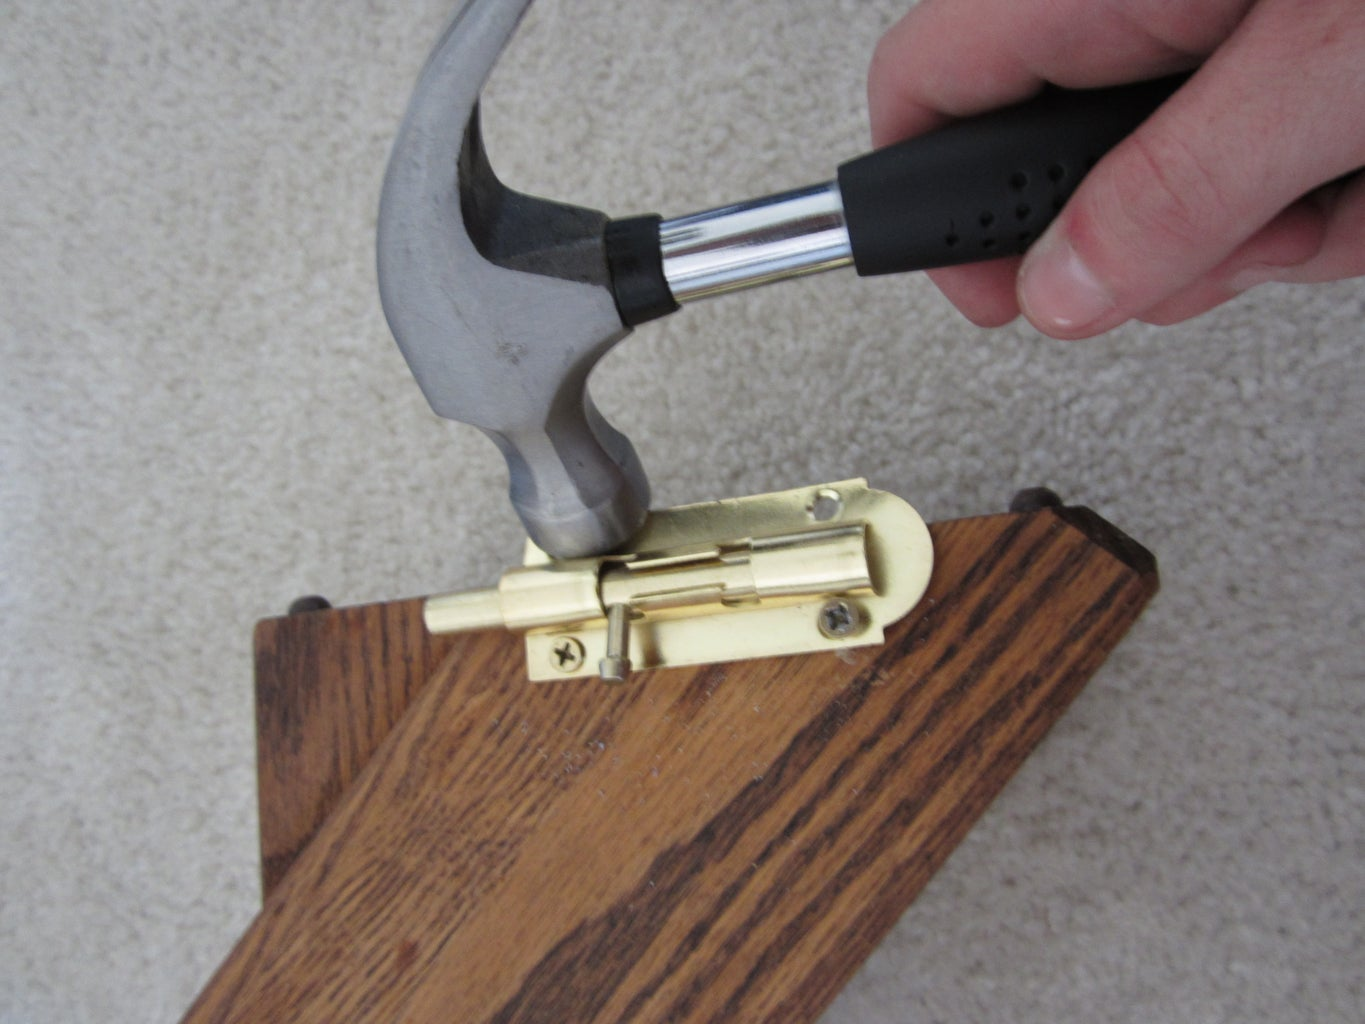 Locking the Board to the Wall